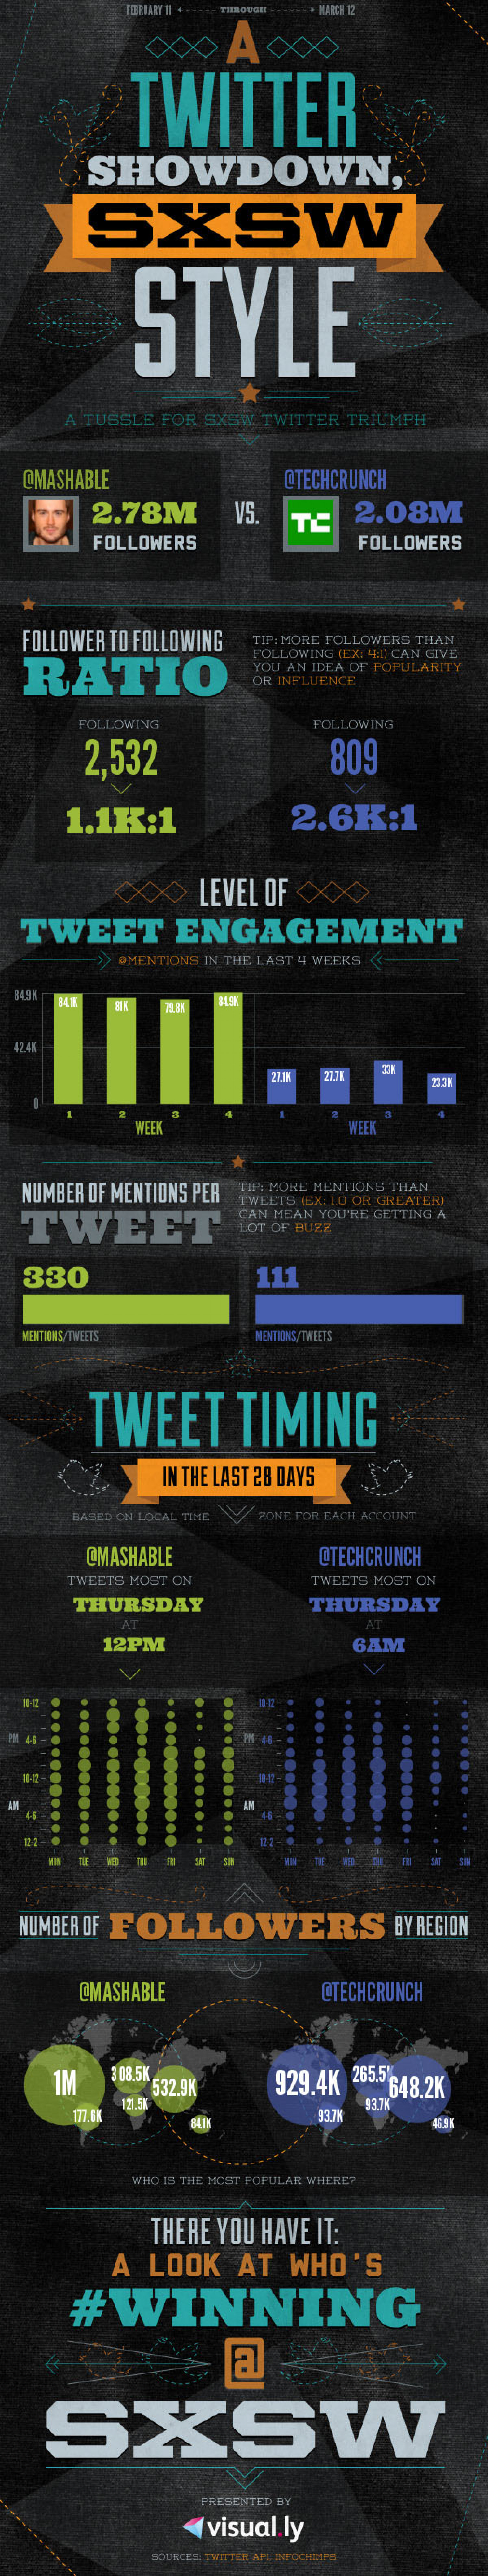 Twitter Showdown: Mashable versus TechCrunch Infographic